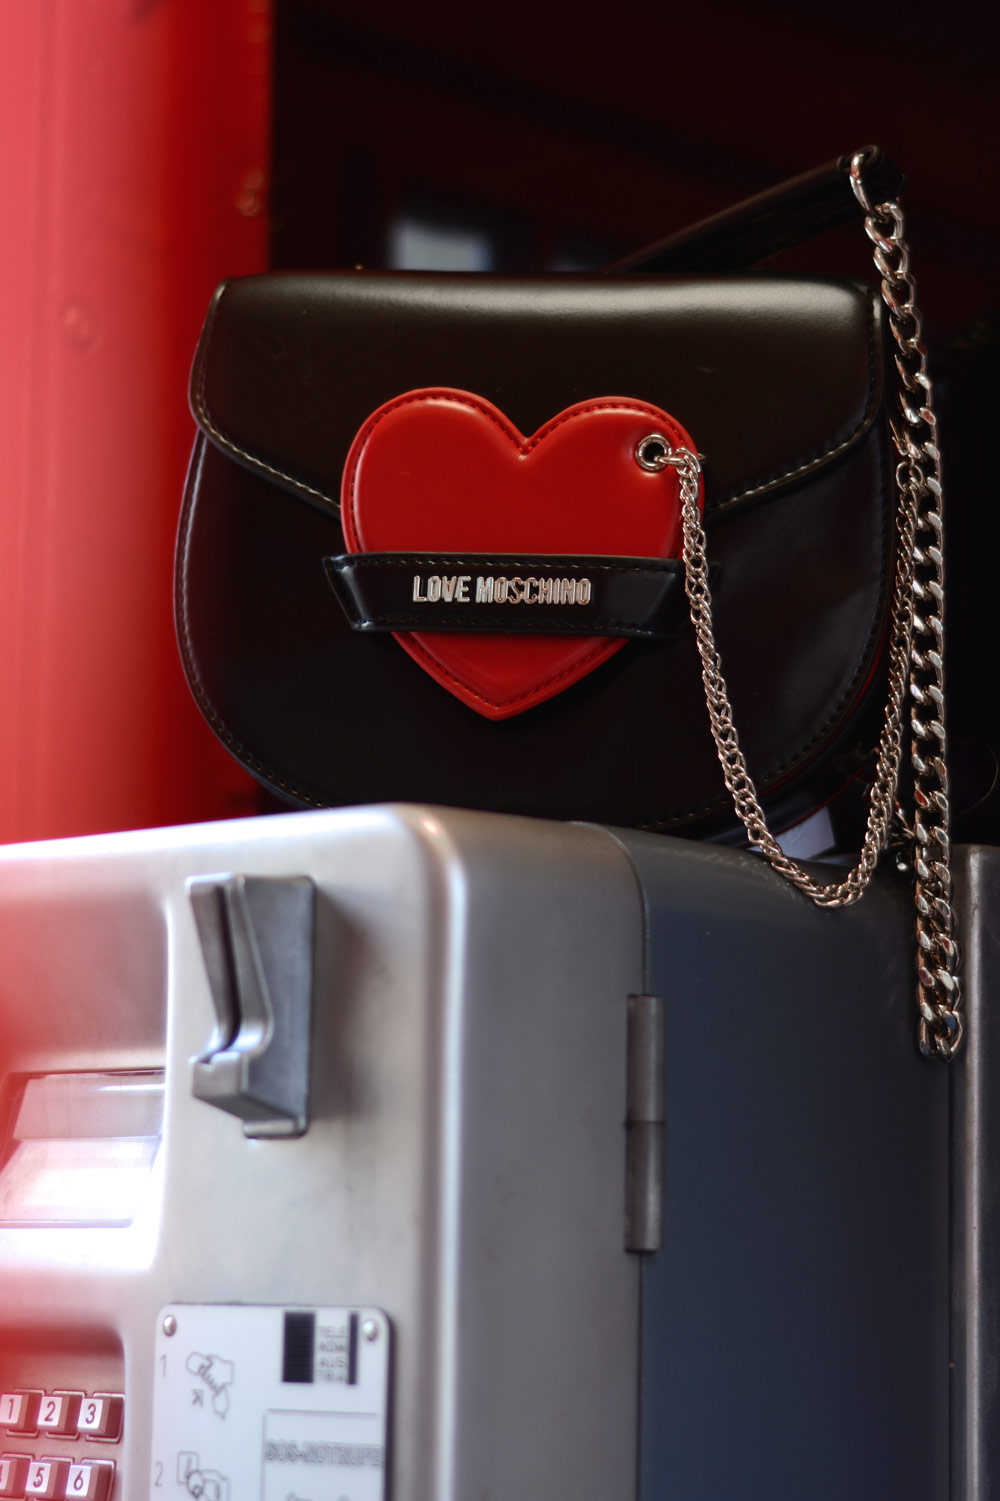 moschino bag red heart valentine´s day